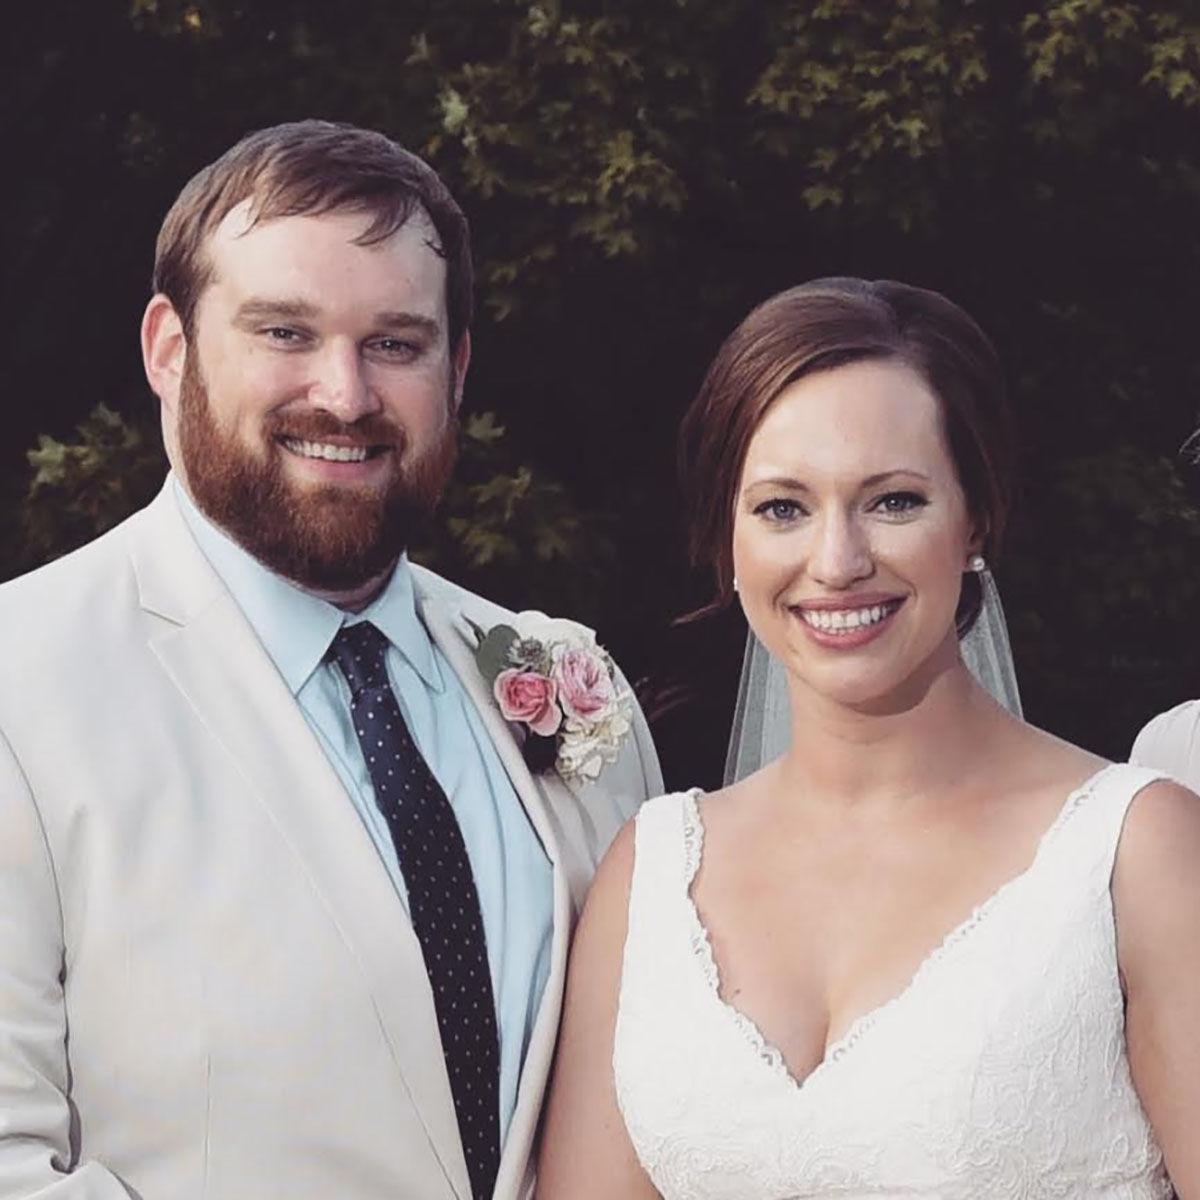 Mr. and Mrs. Robert Stephen Darville